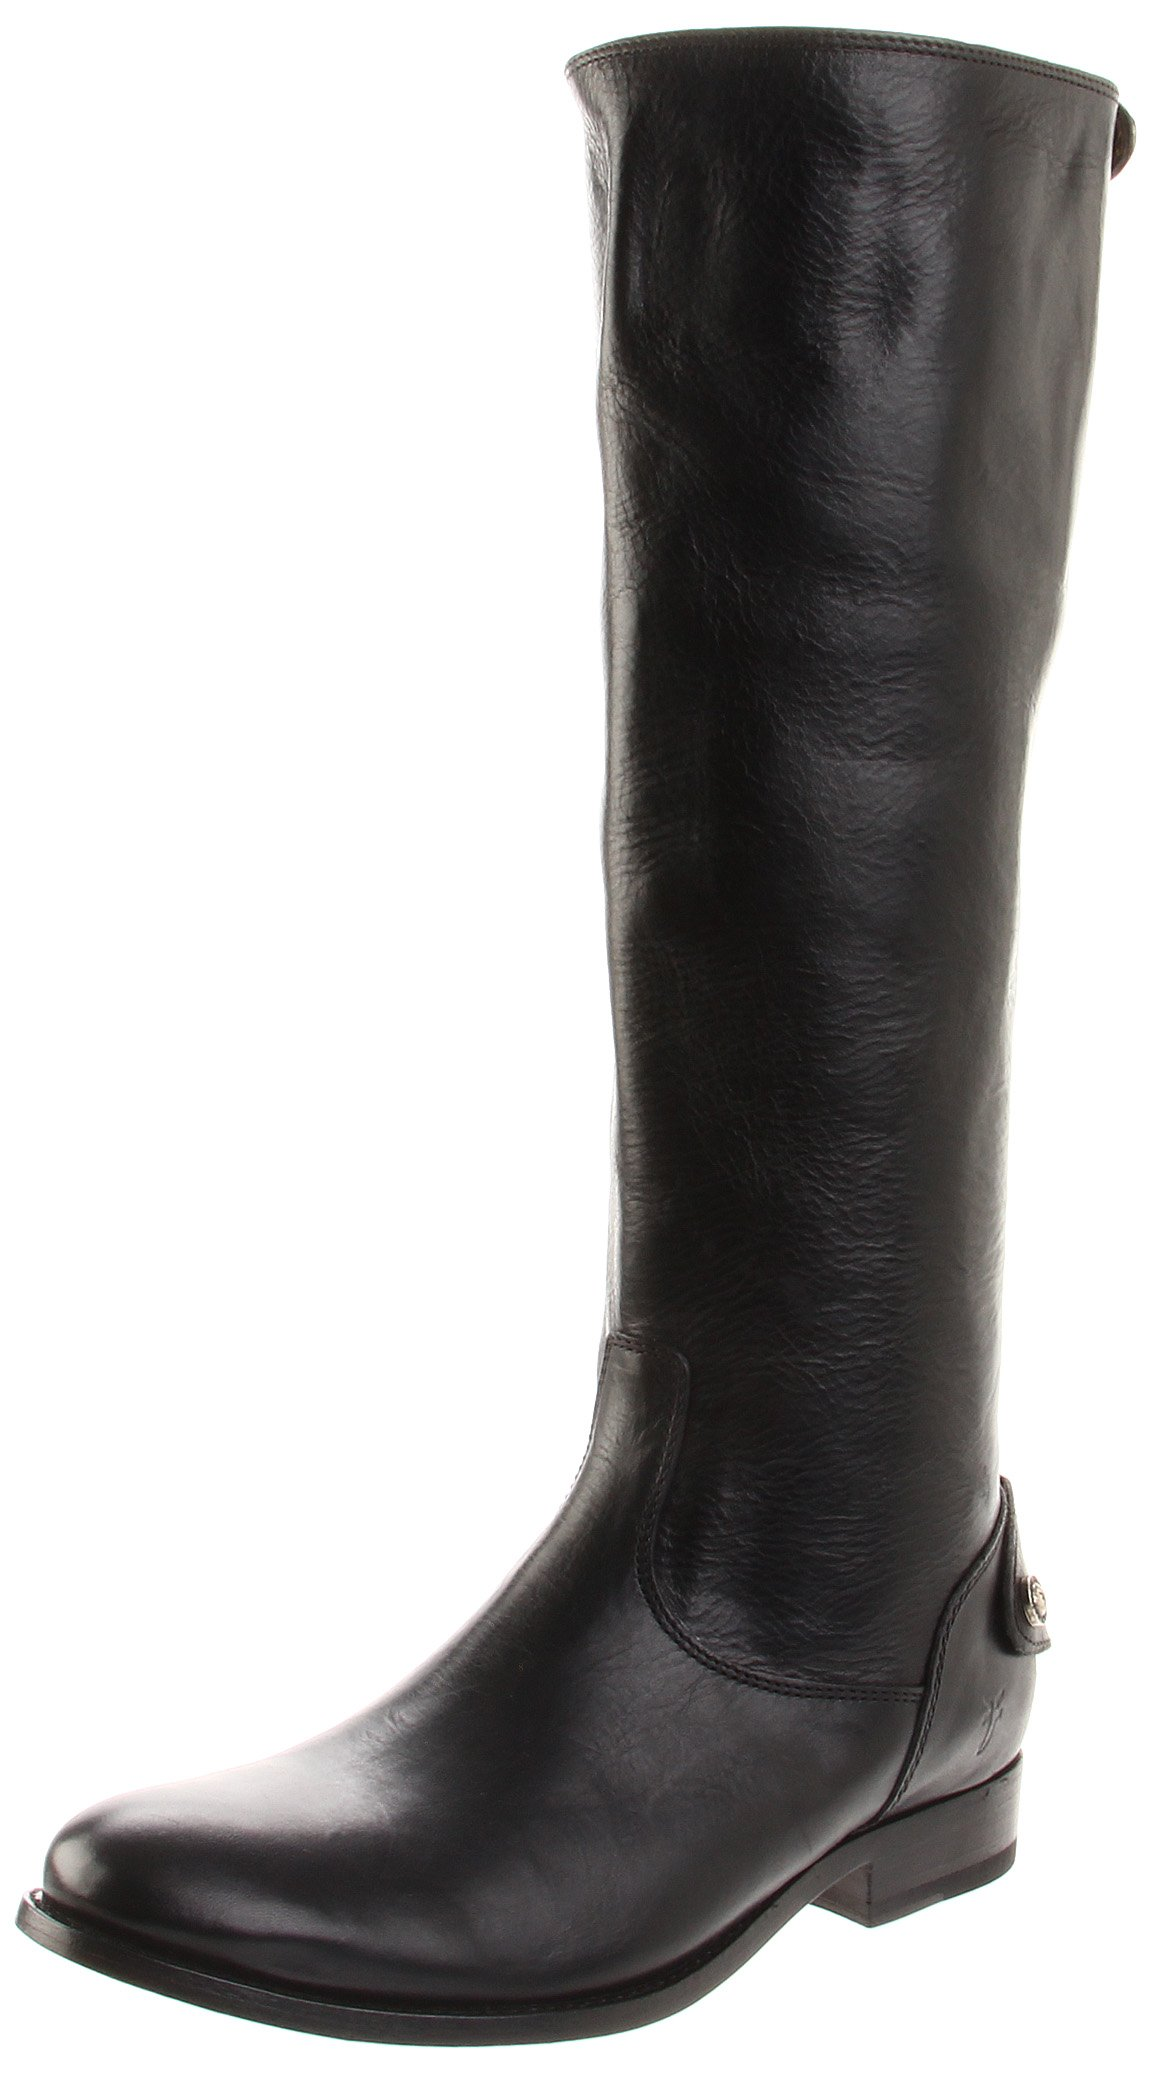 FRYE Women's Melissa Button Back-Zip Boot, Black Smooth Vintage Leather, 6 M US